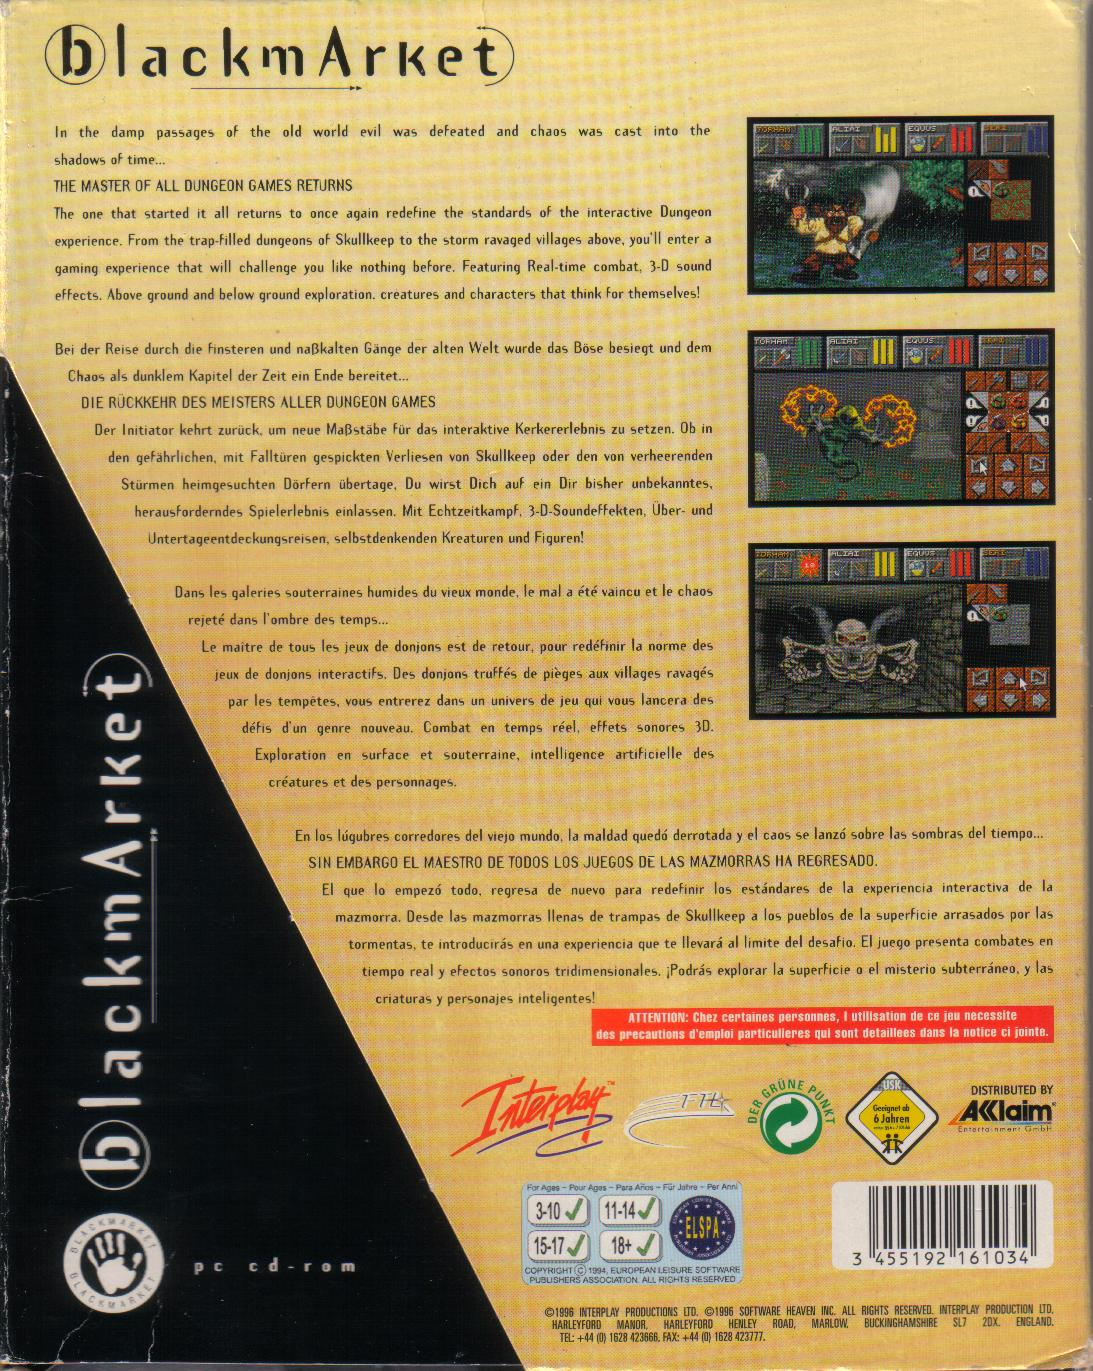 Dungeon Master II for PC (Blackmarket) - Box Back